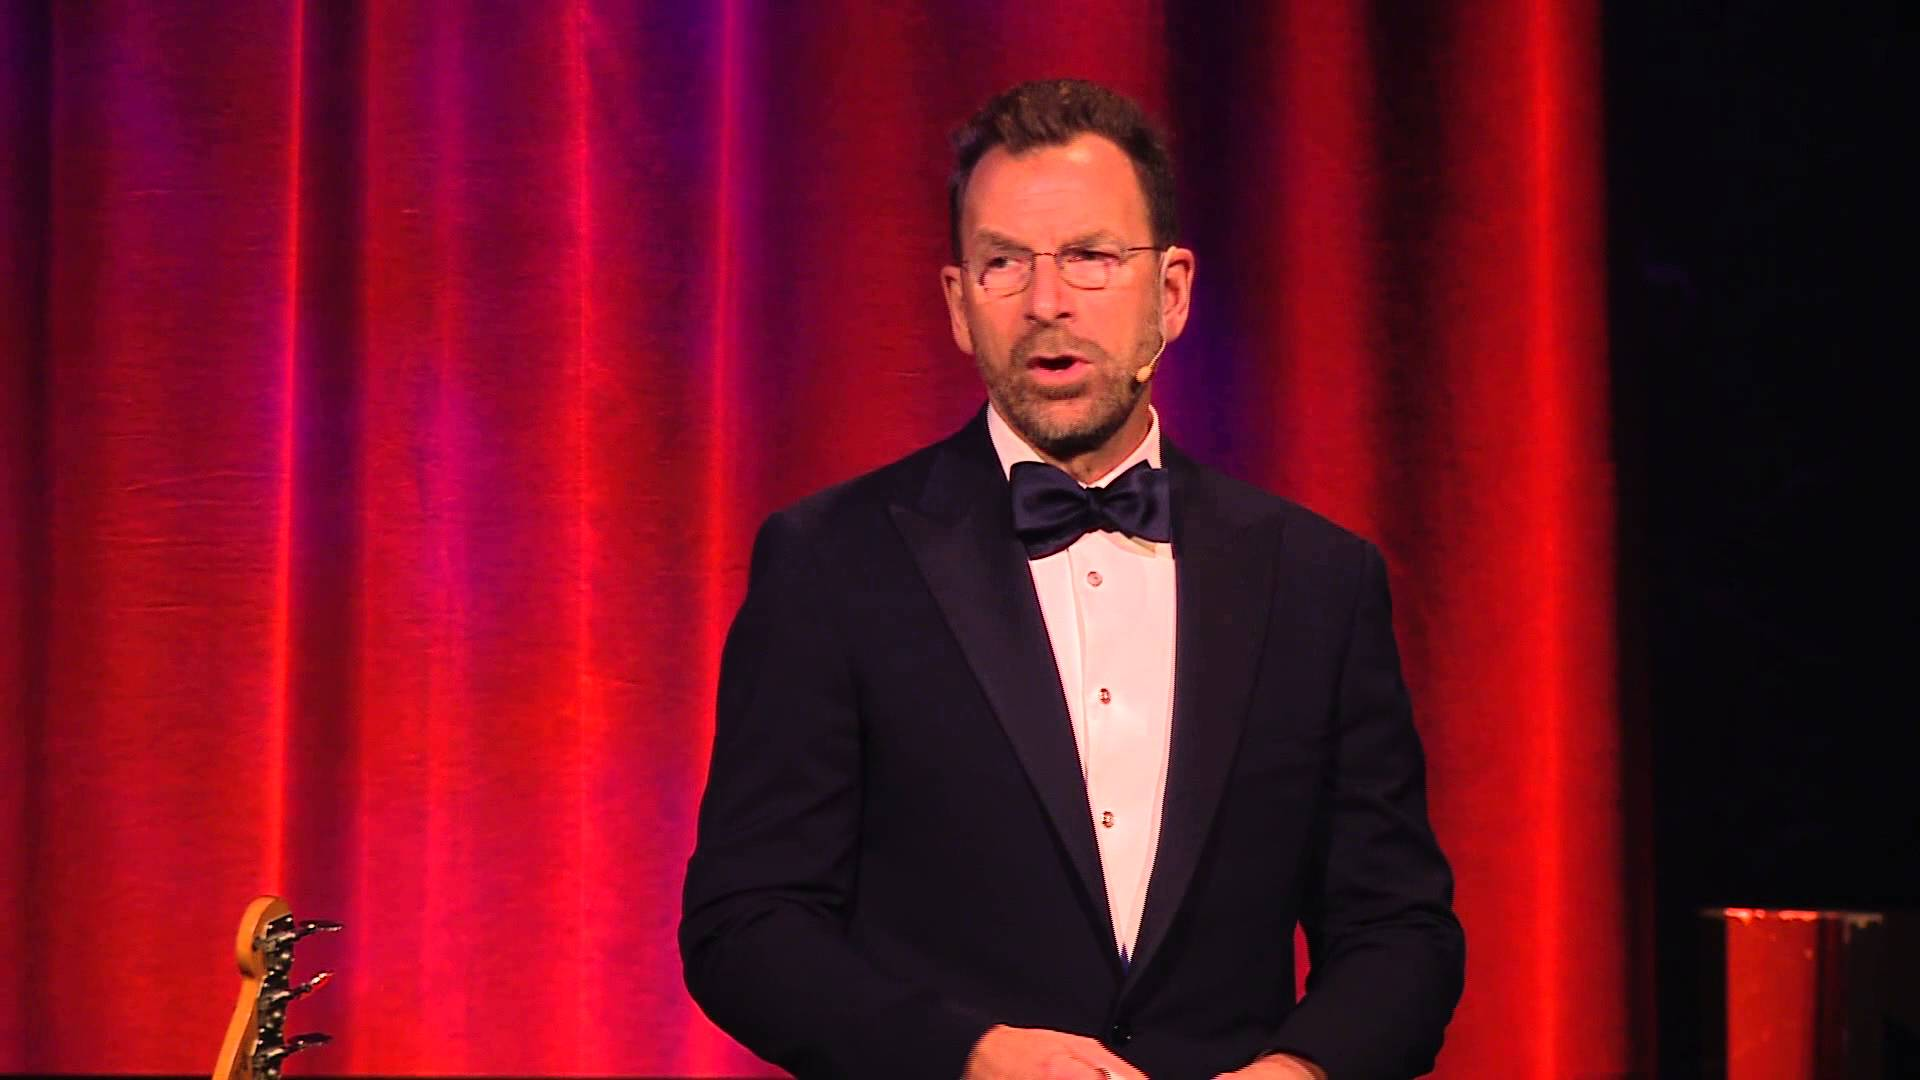 Edgar Bronfman Jr 's Time plan: Swimsuit shows SI's done?